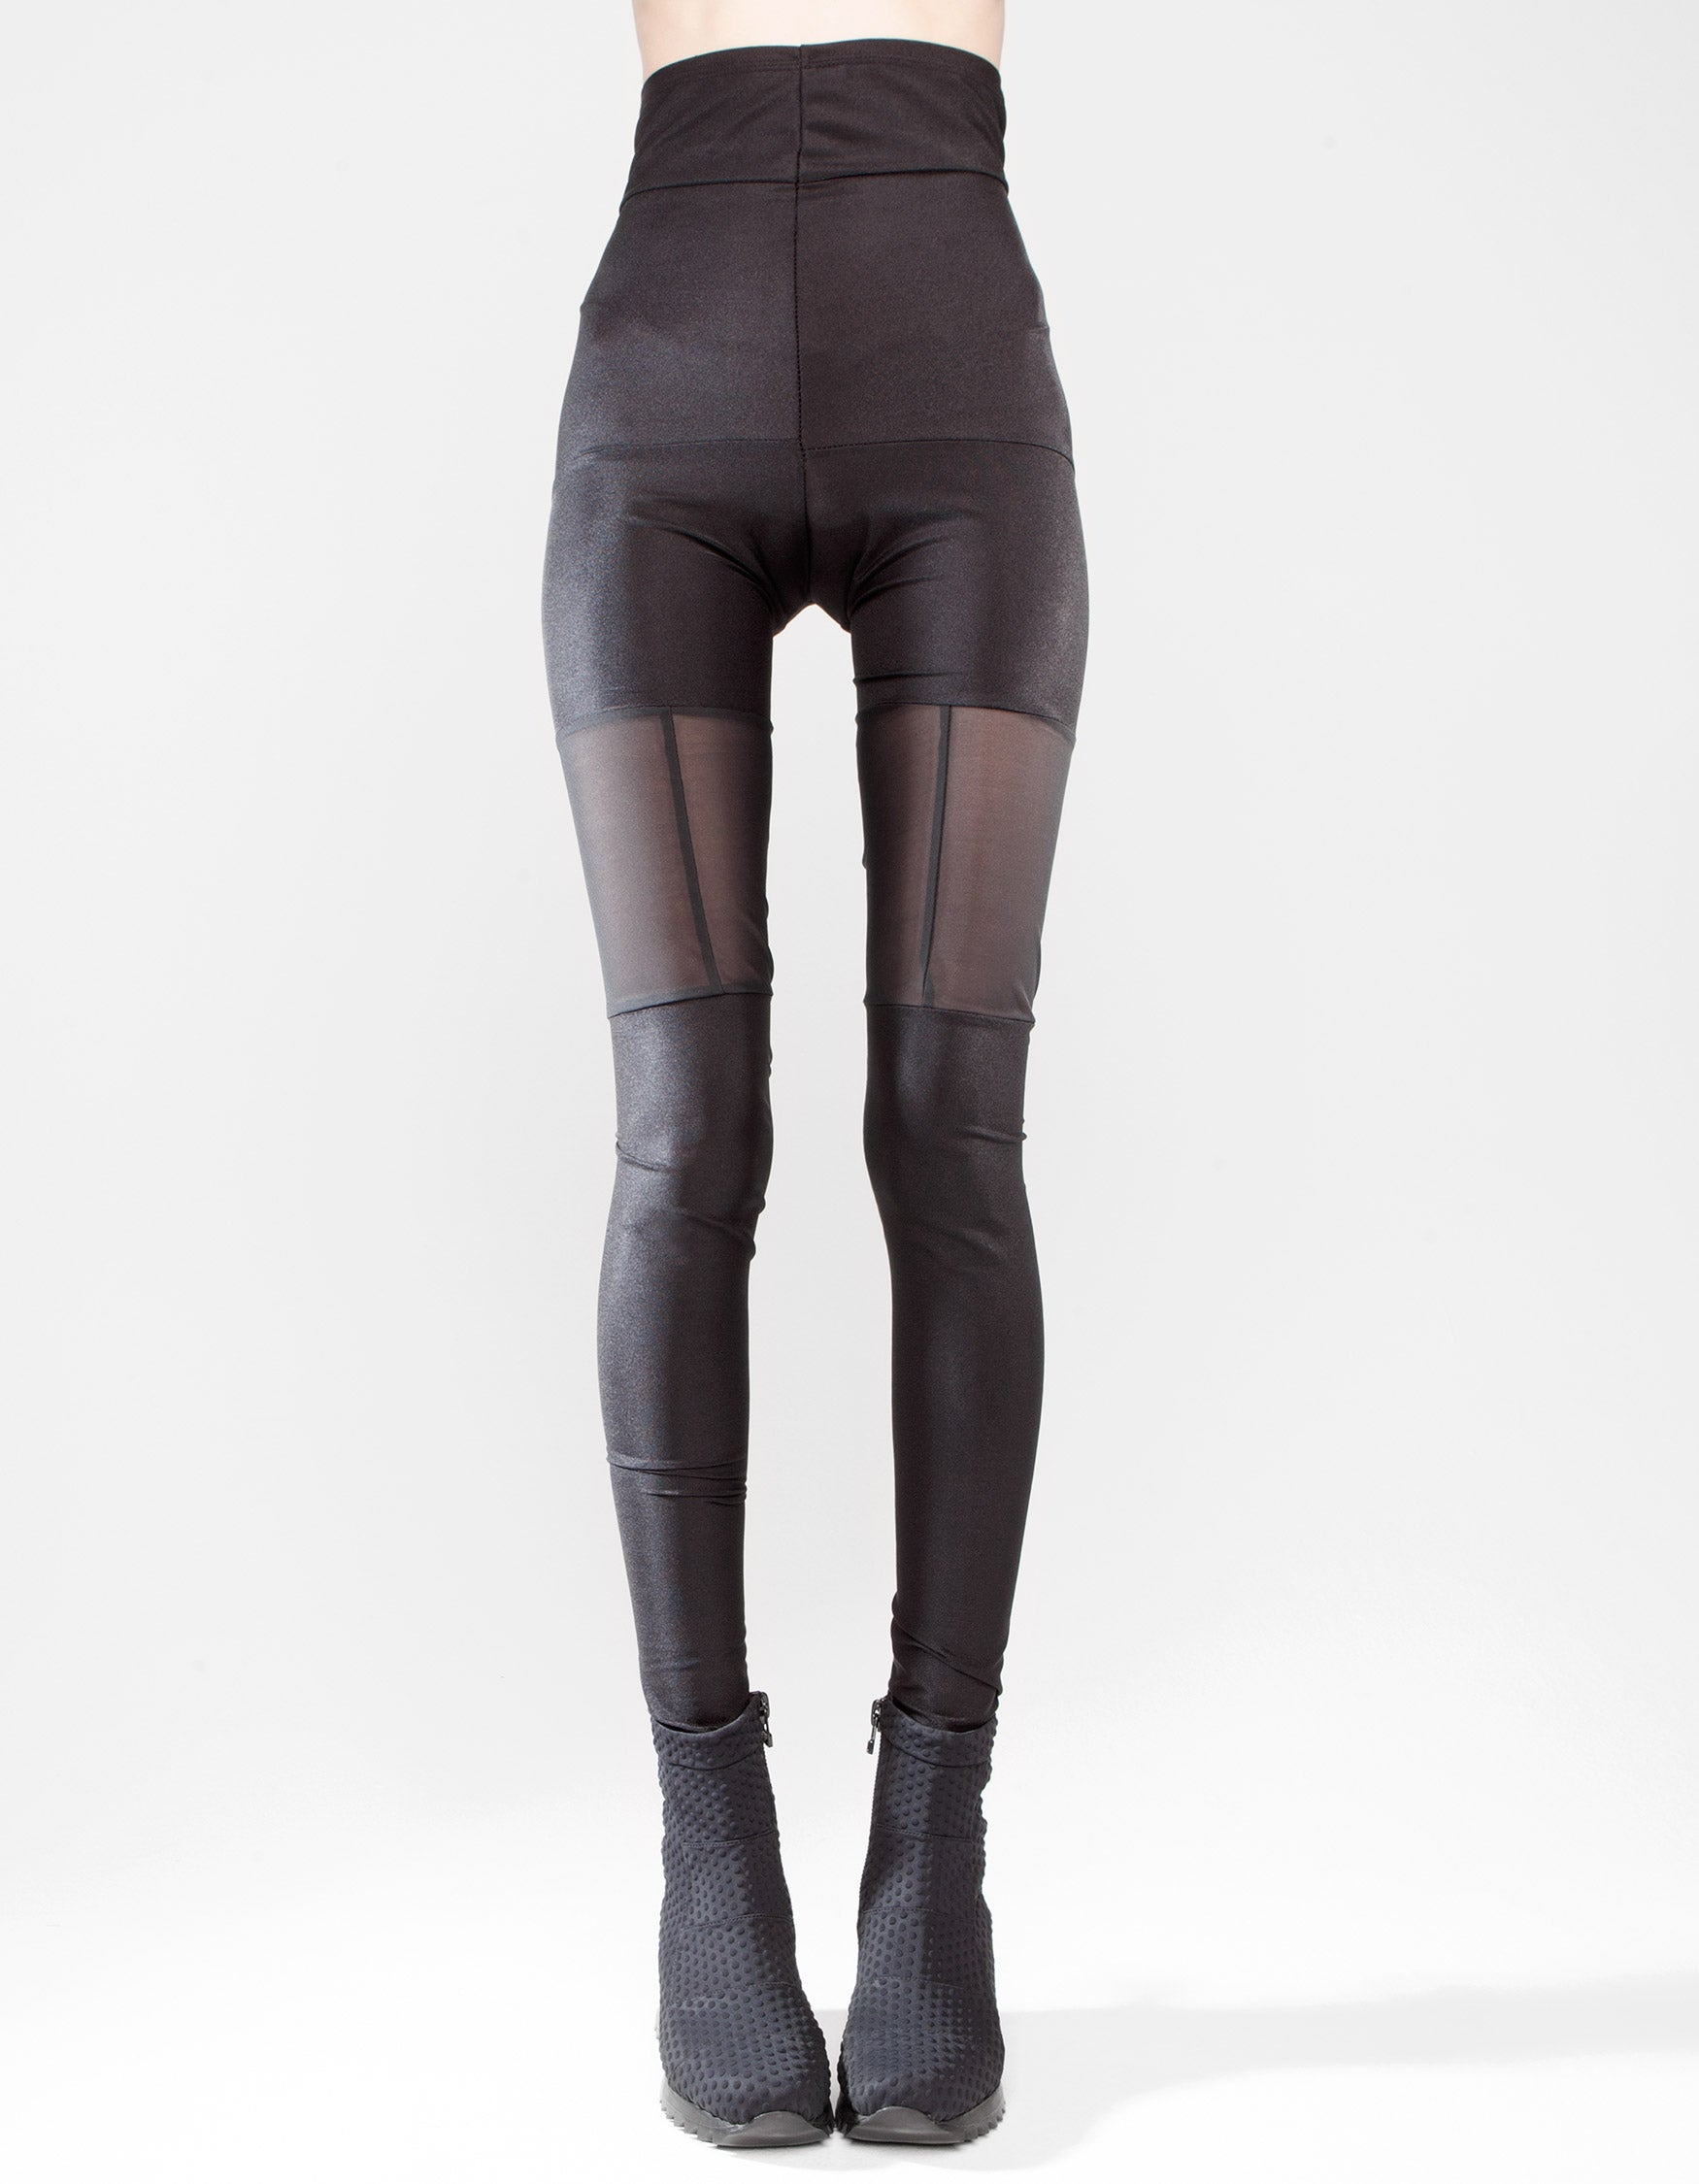 LEGGINGS FORM